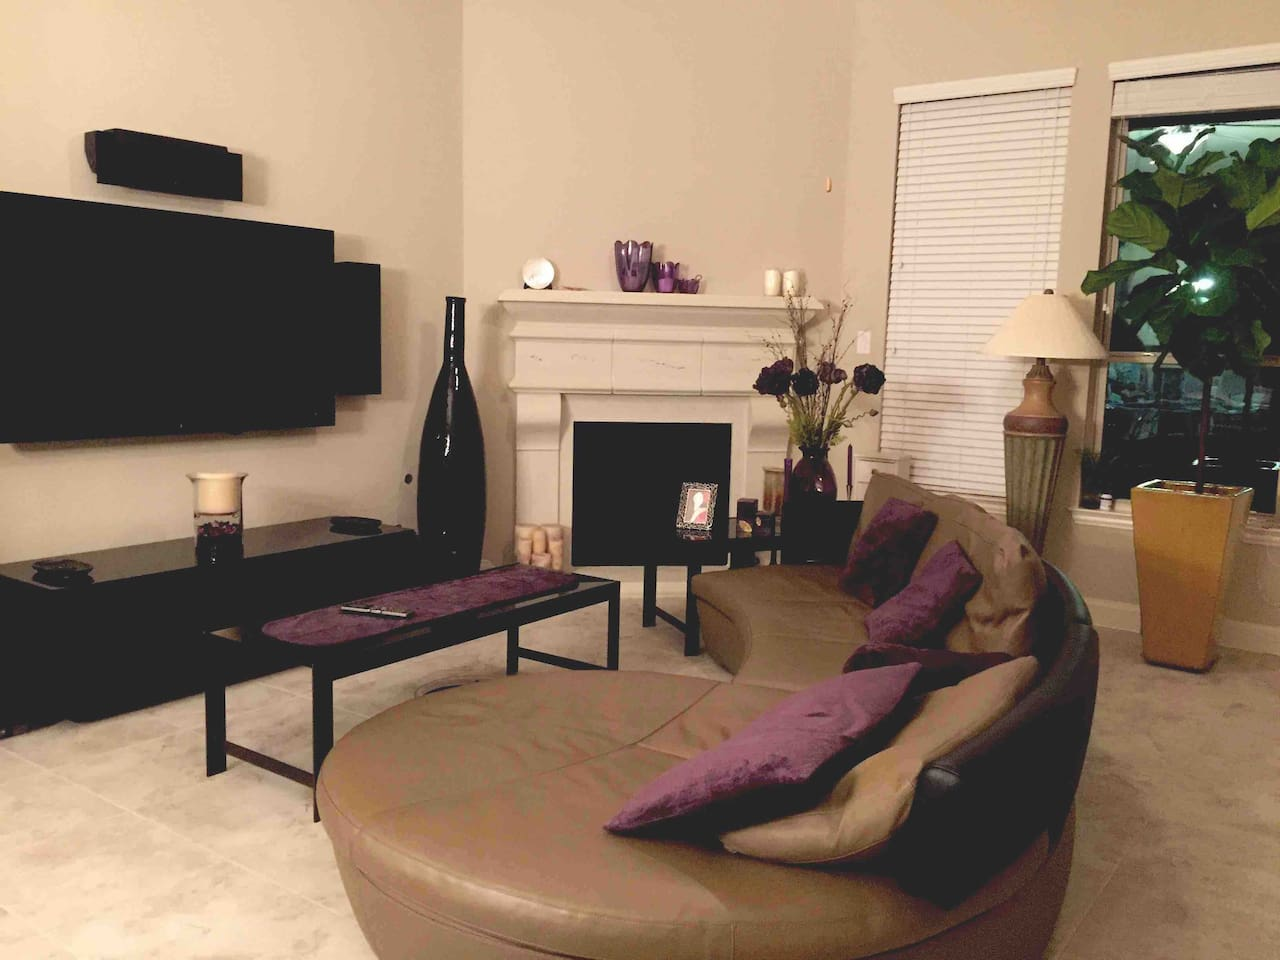 Modern home decorated in a PURPLE theme....Living room with a cozy fireplace and a very comfy leather sofa to watch TV, Netflix or HBO power by a modern Martin Logan surround sound system